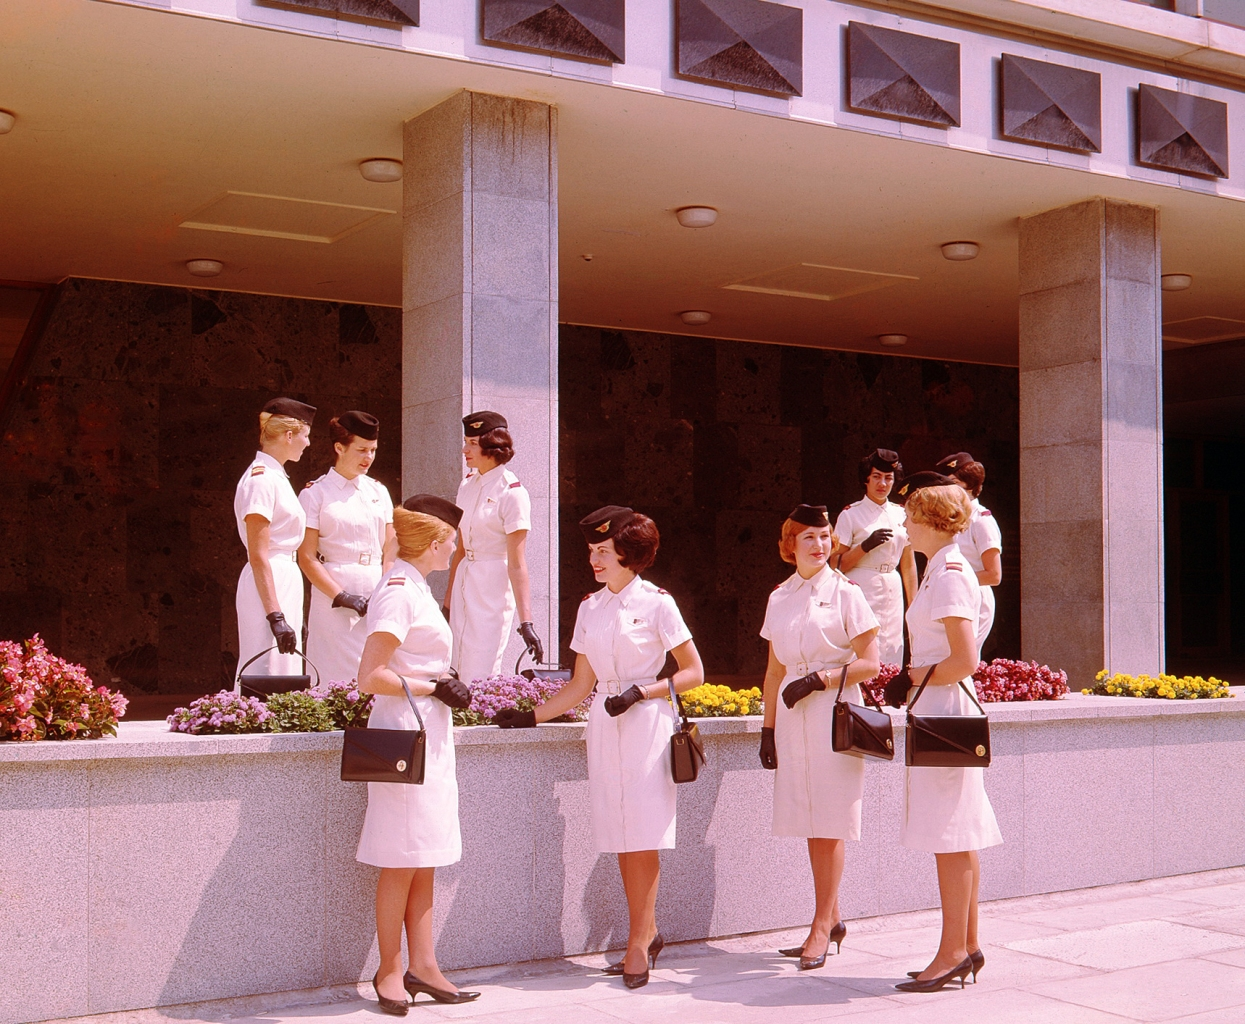 New Zealand, air hostesses from 1959. Courtesy NZ governement archives